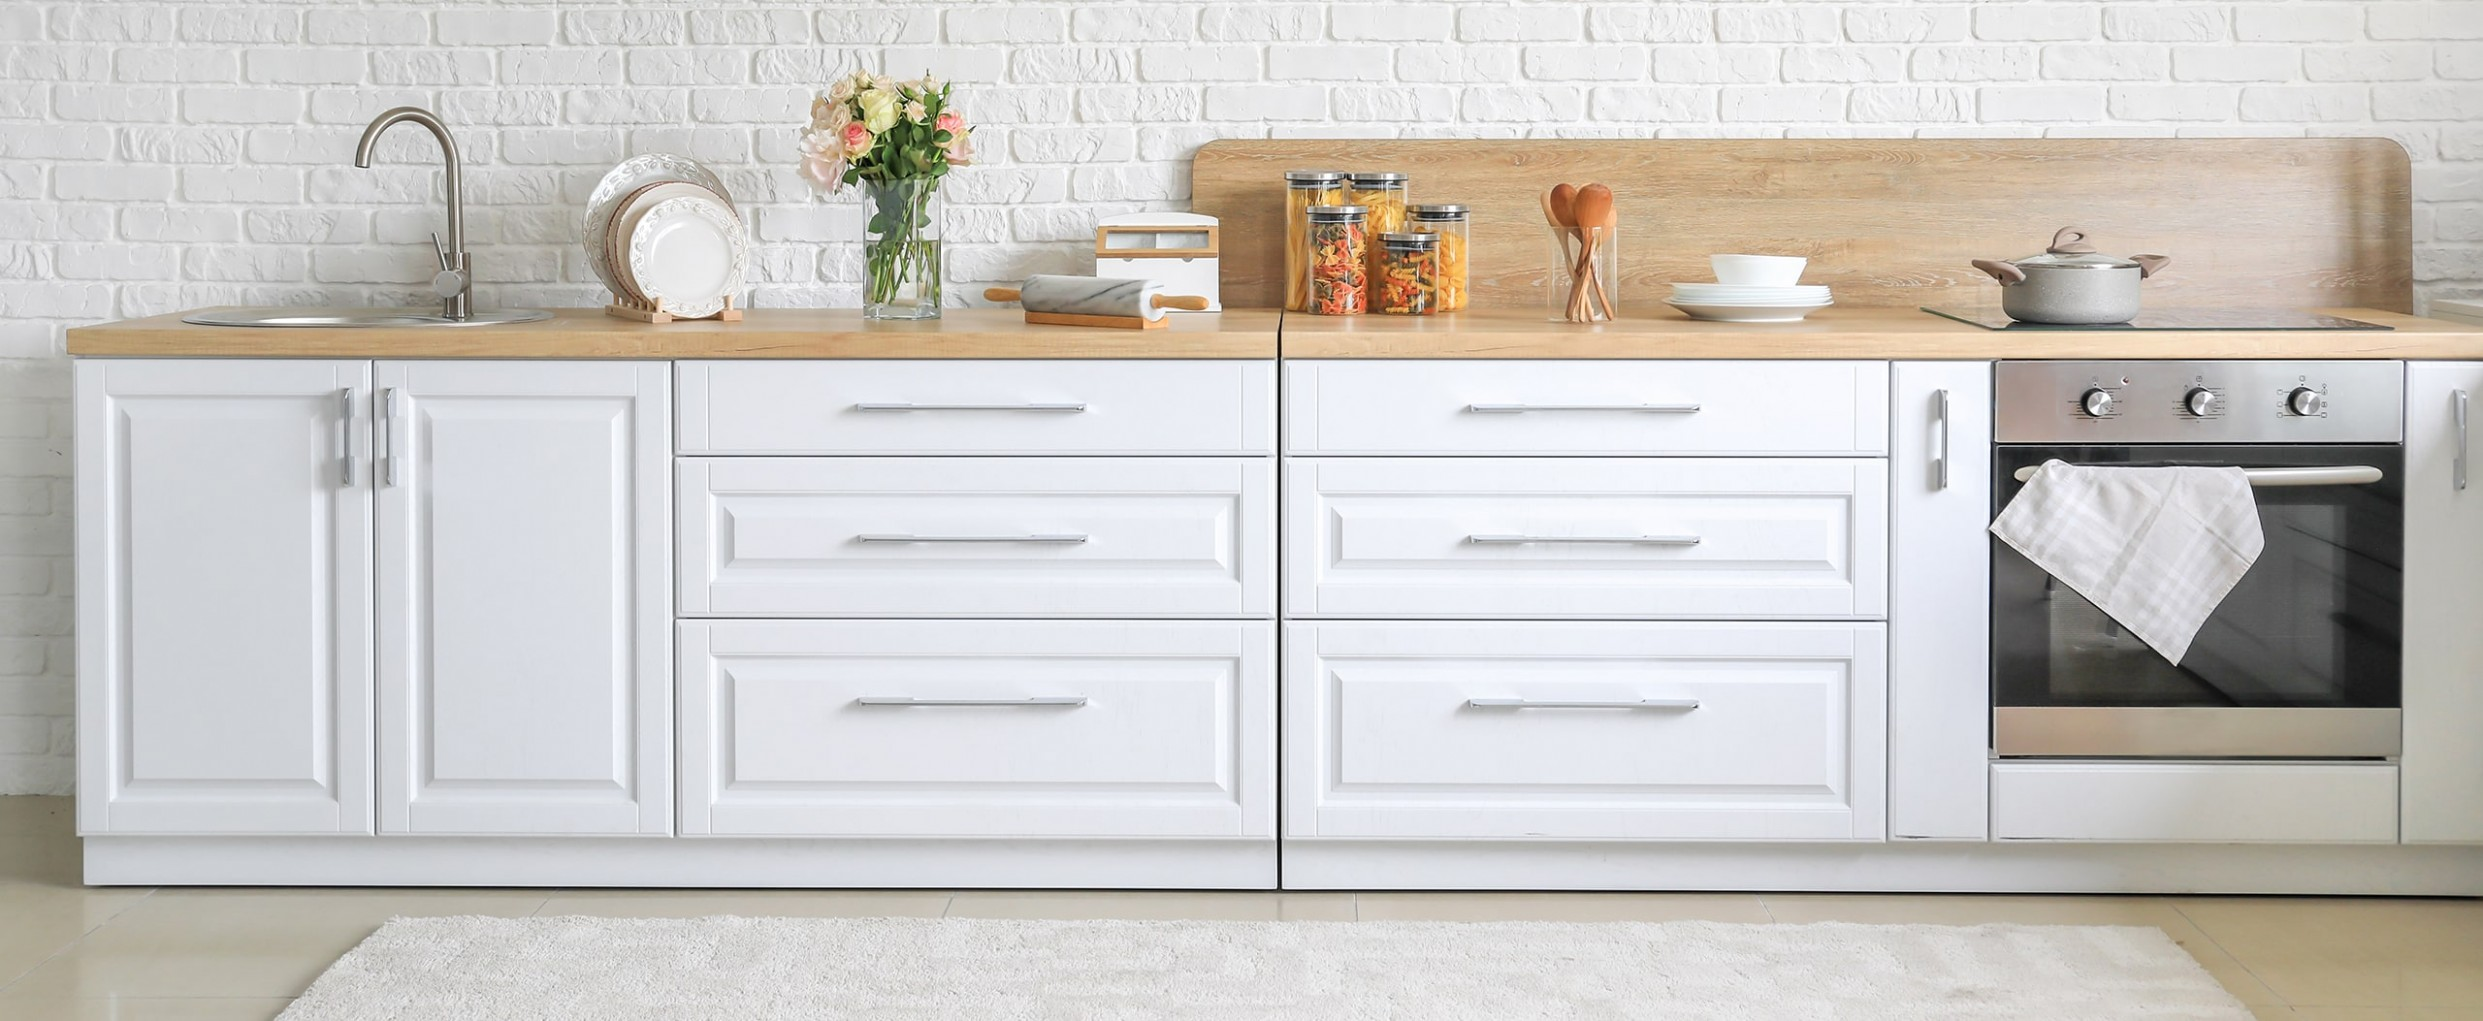 Cabinet Hardware Placement Guide - Installing Knobs And Pulls On Kitchen Cabinets